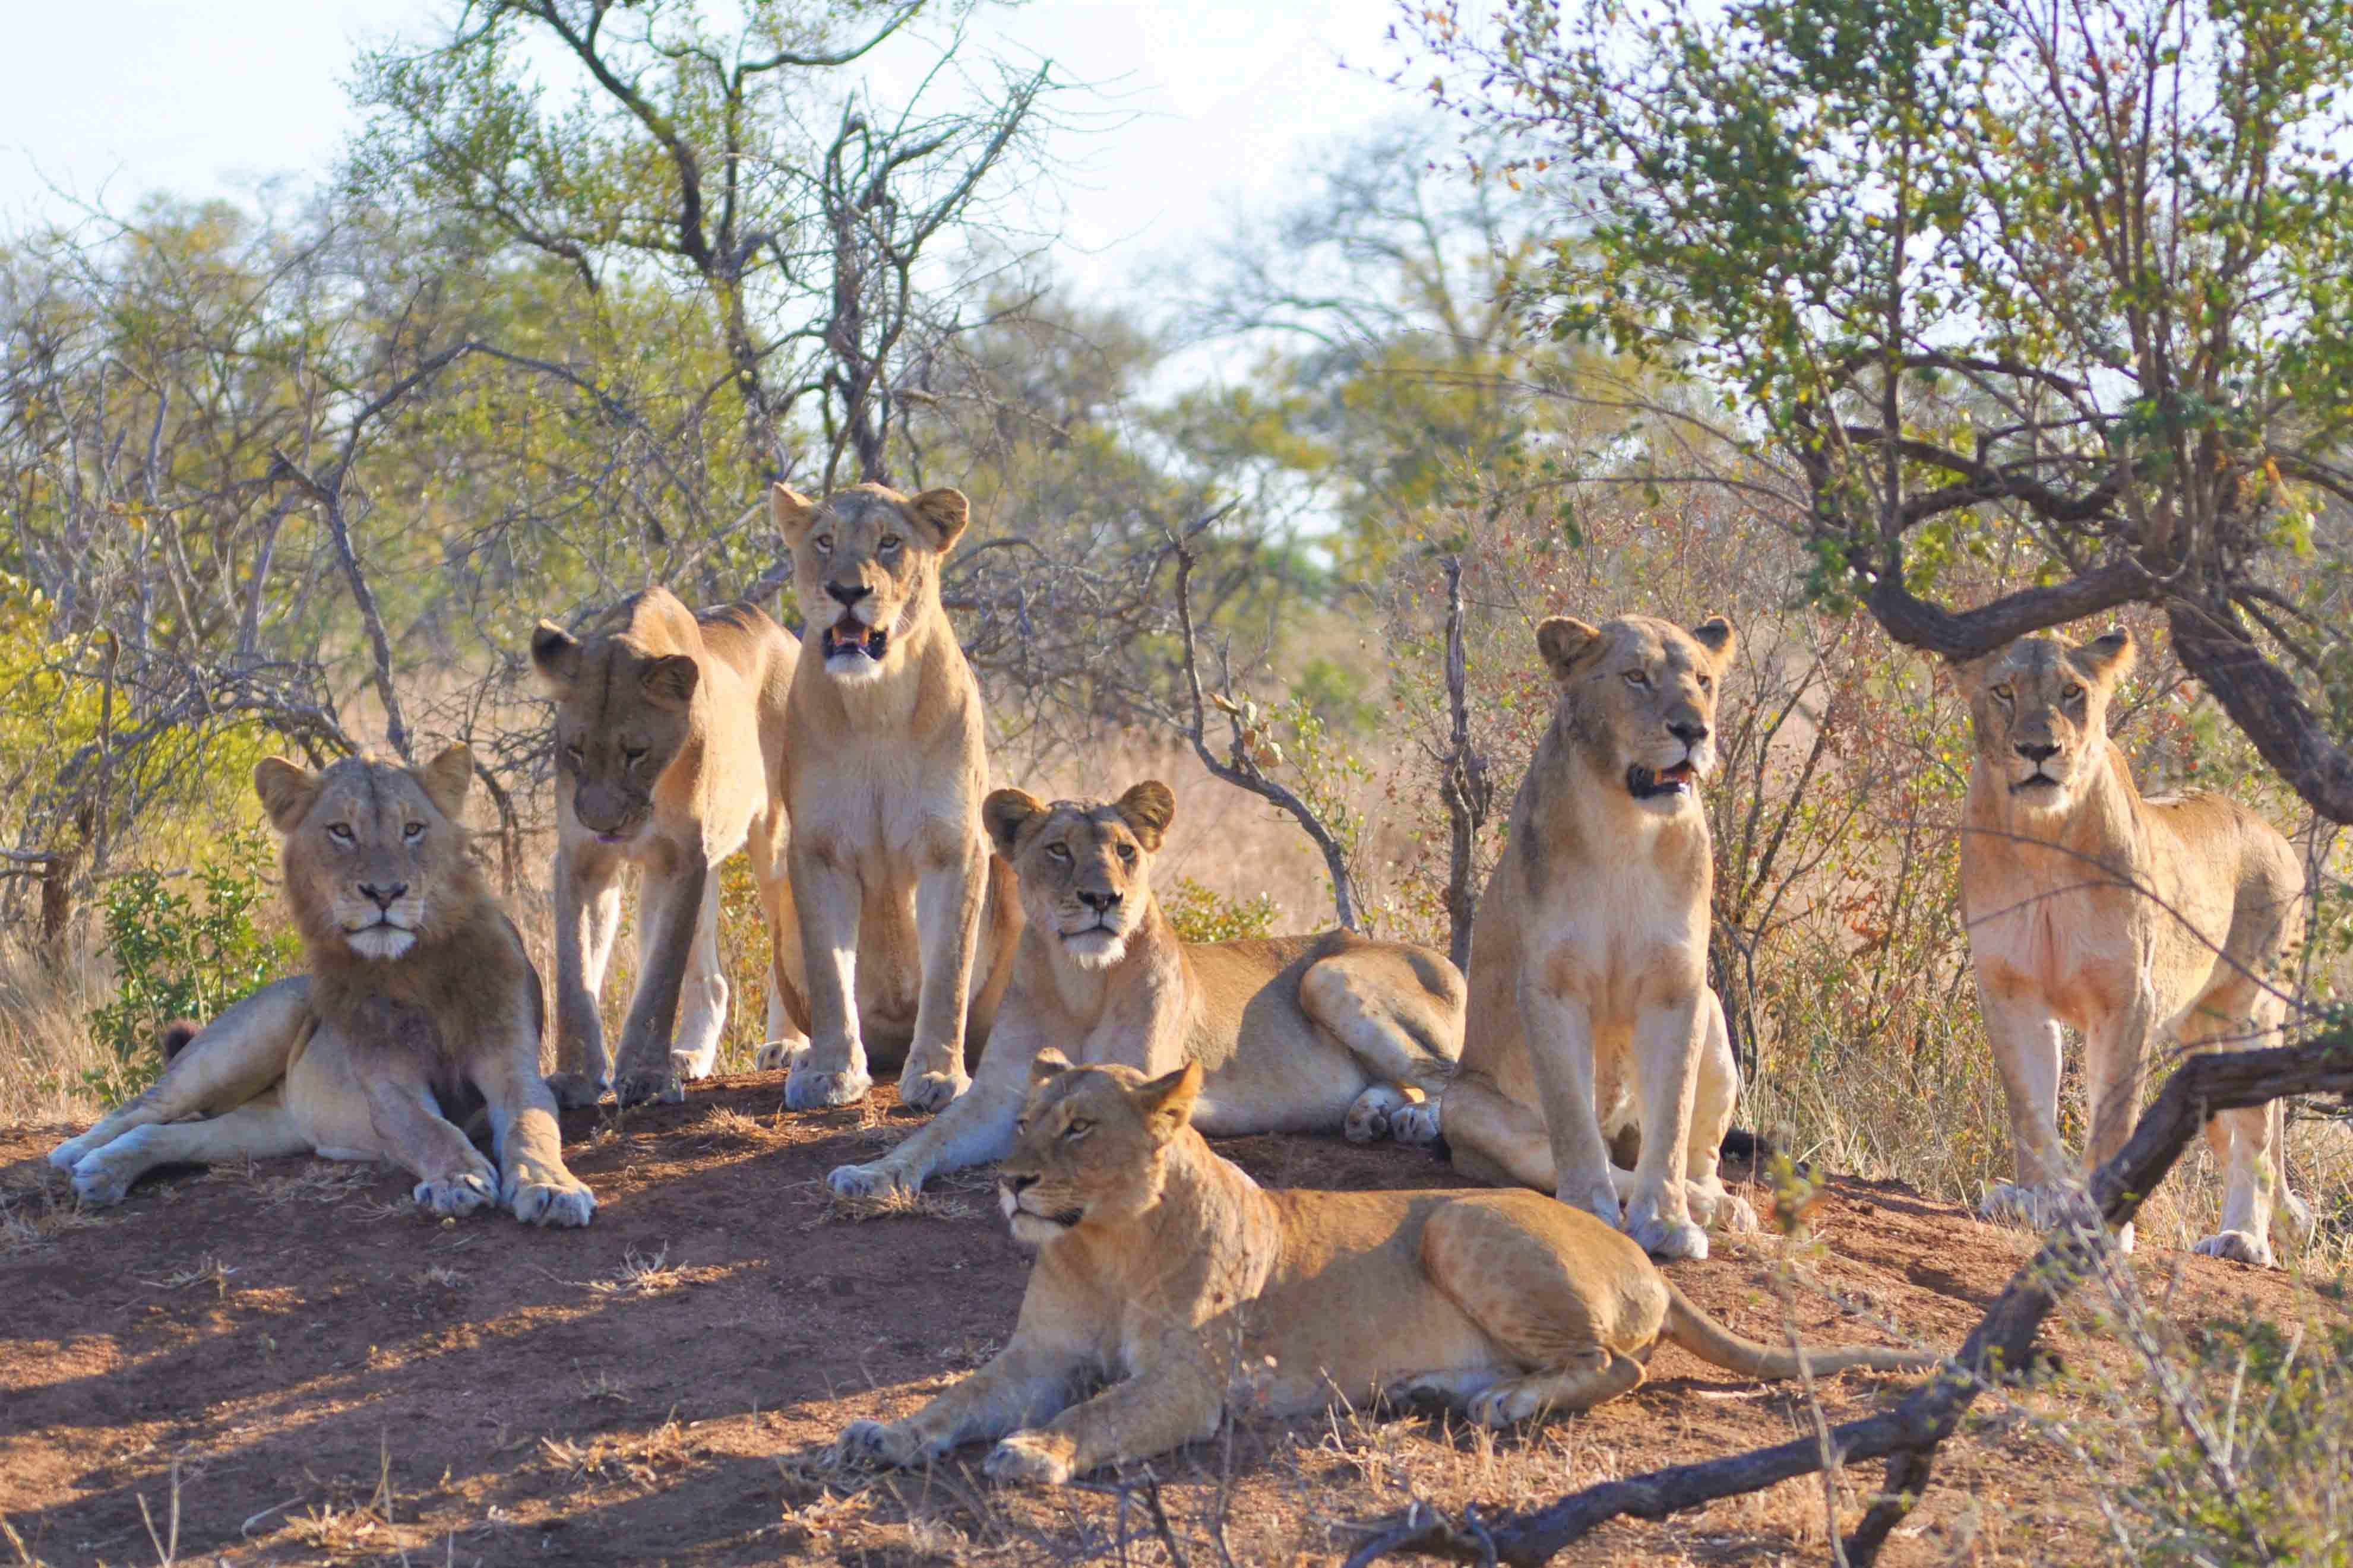 Lions generate significant national revenue and remain one of the most sought-after animals by tourists and trophy hunters. (Photograph by Samantha Page-Nicholson/African Lion Database/Endangered Wildlife Trust)